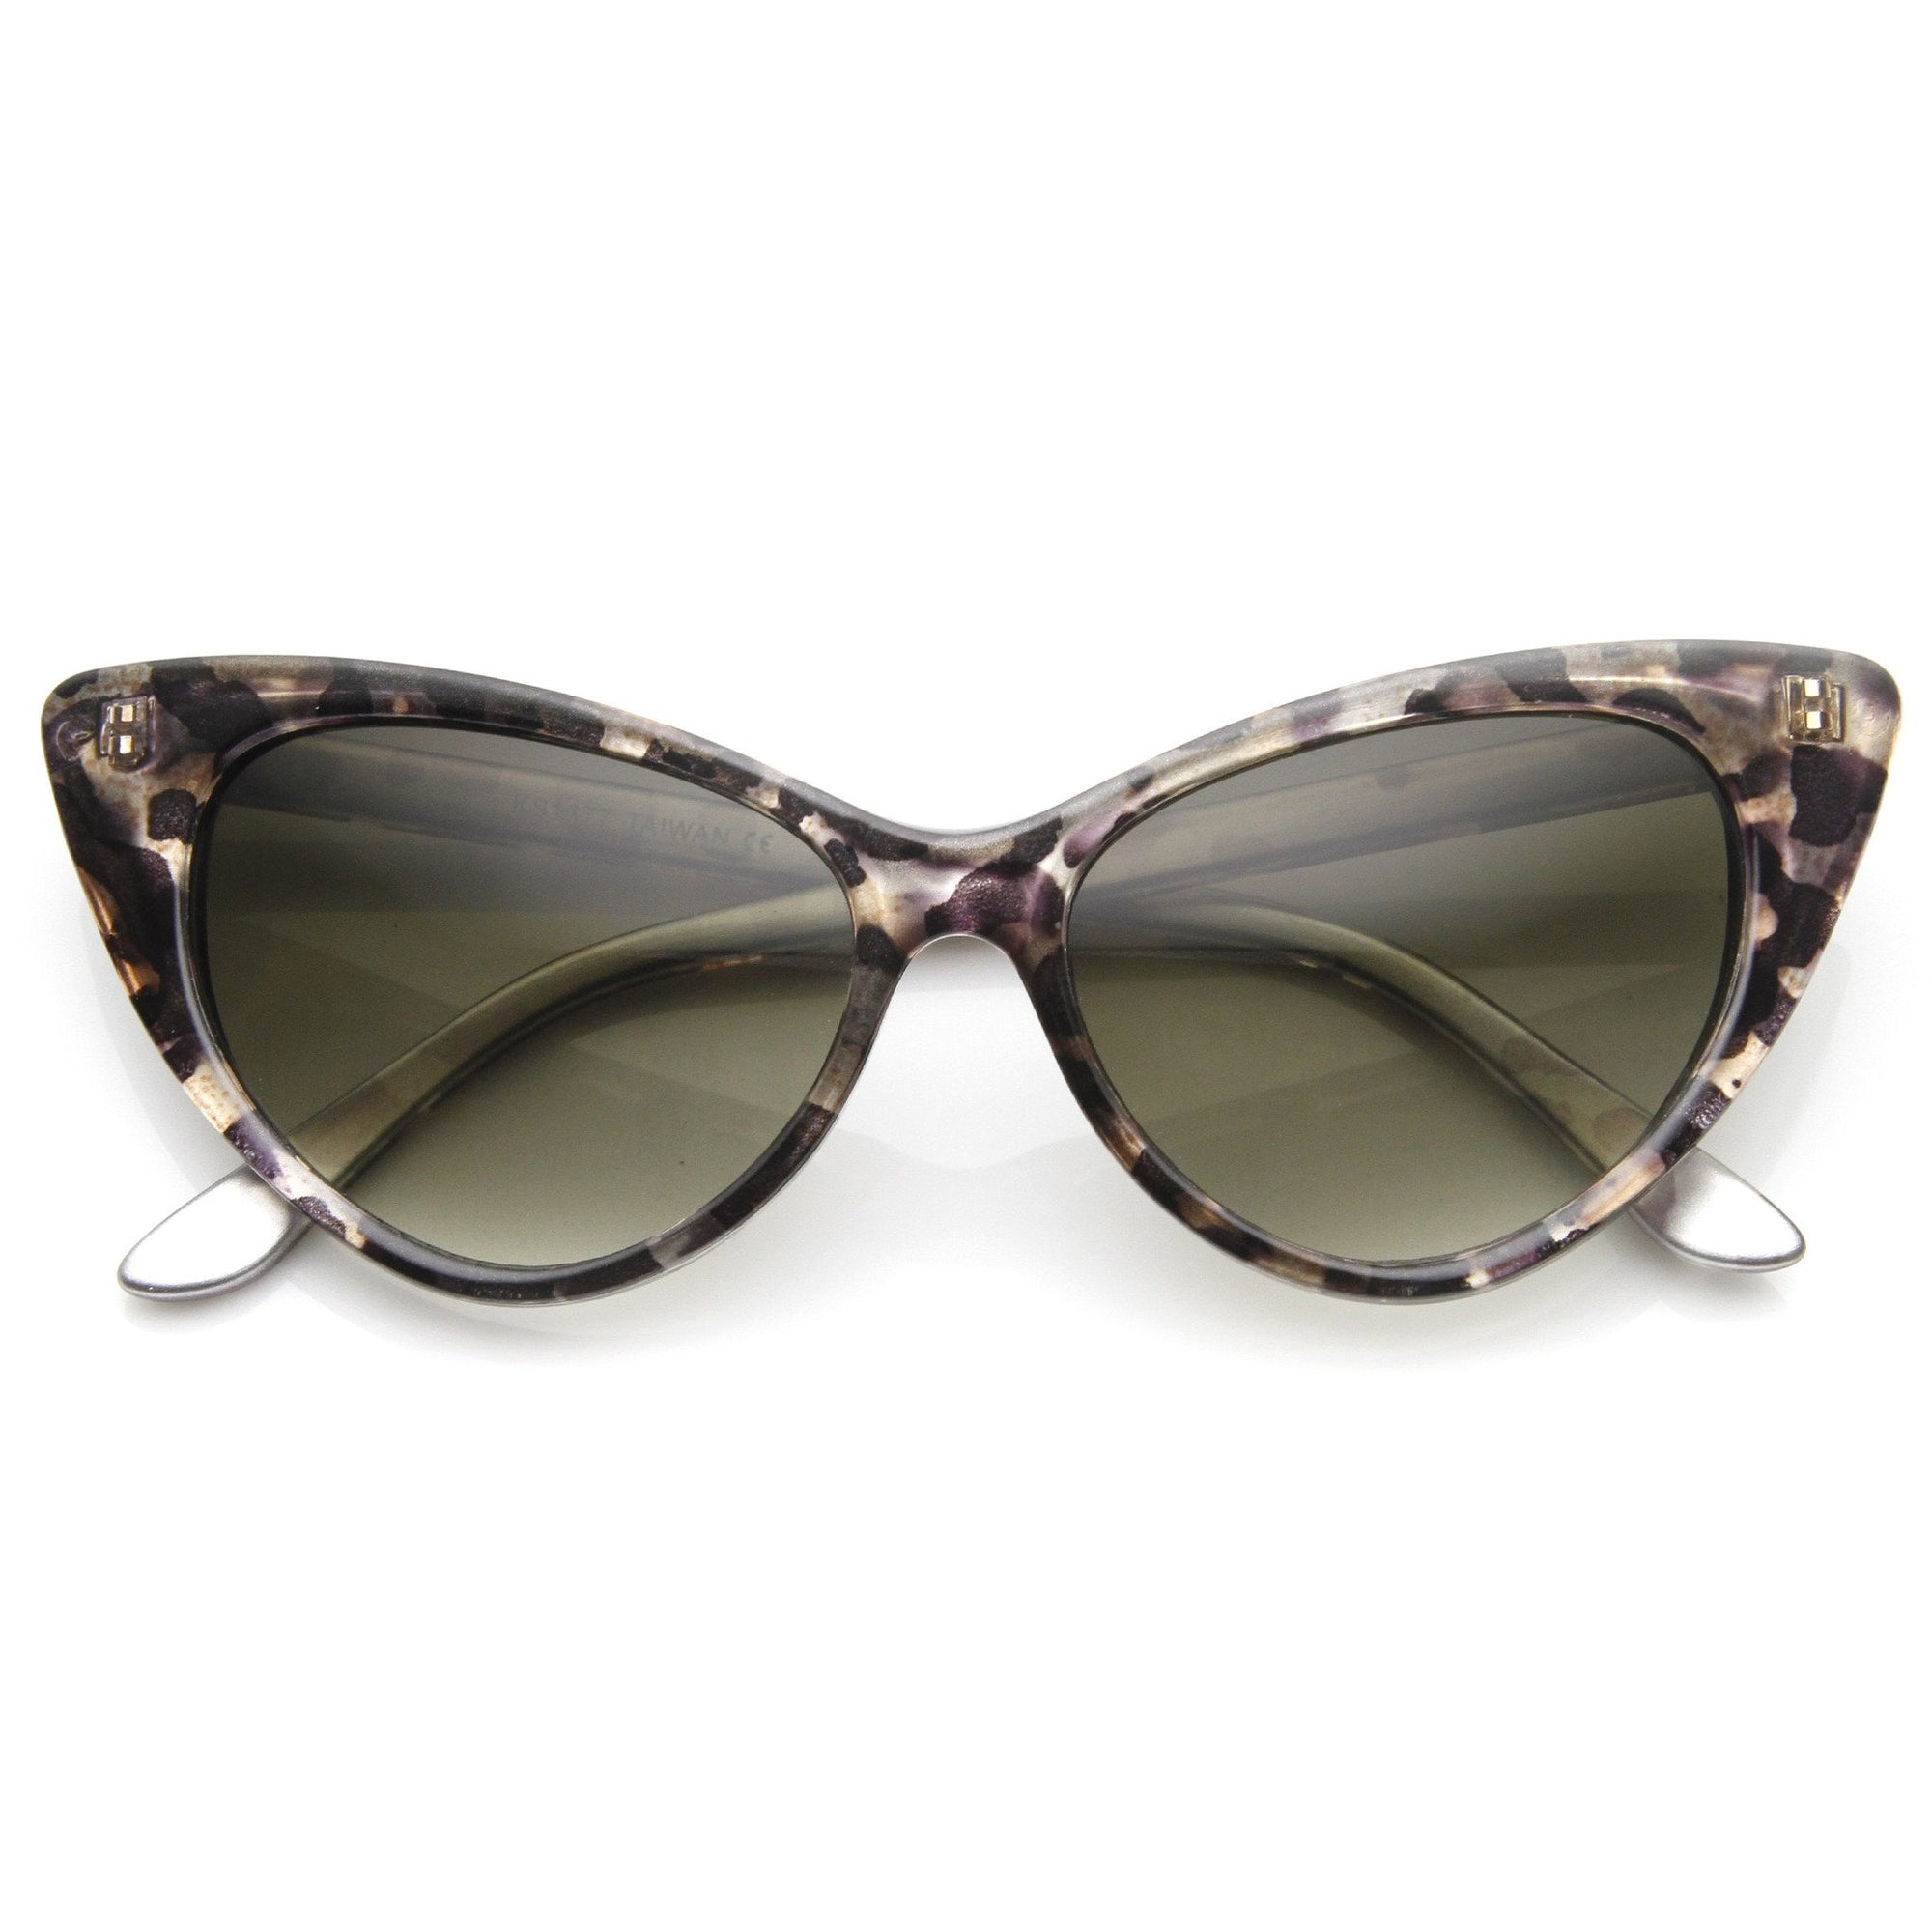 2ac6c1a9c7b3c Womens Retro Mod 1950 s Version Hot Tip Pointed Cat Eye Sunglasses 9145.  9145d